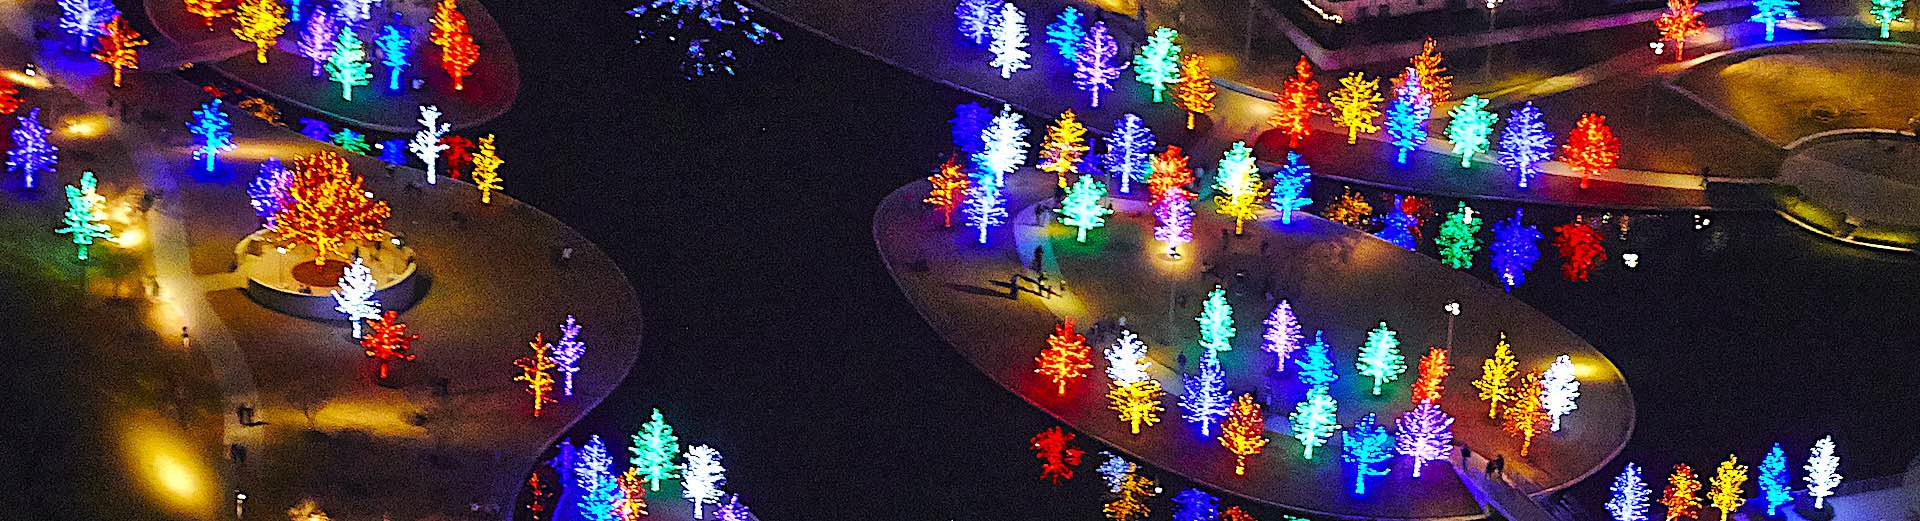 Vitruvian Lights Addison by Helicopter